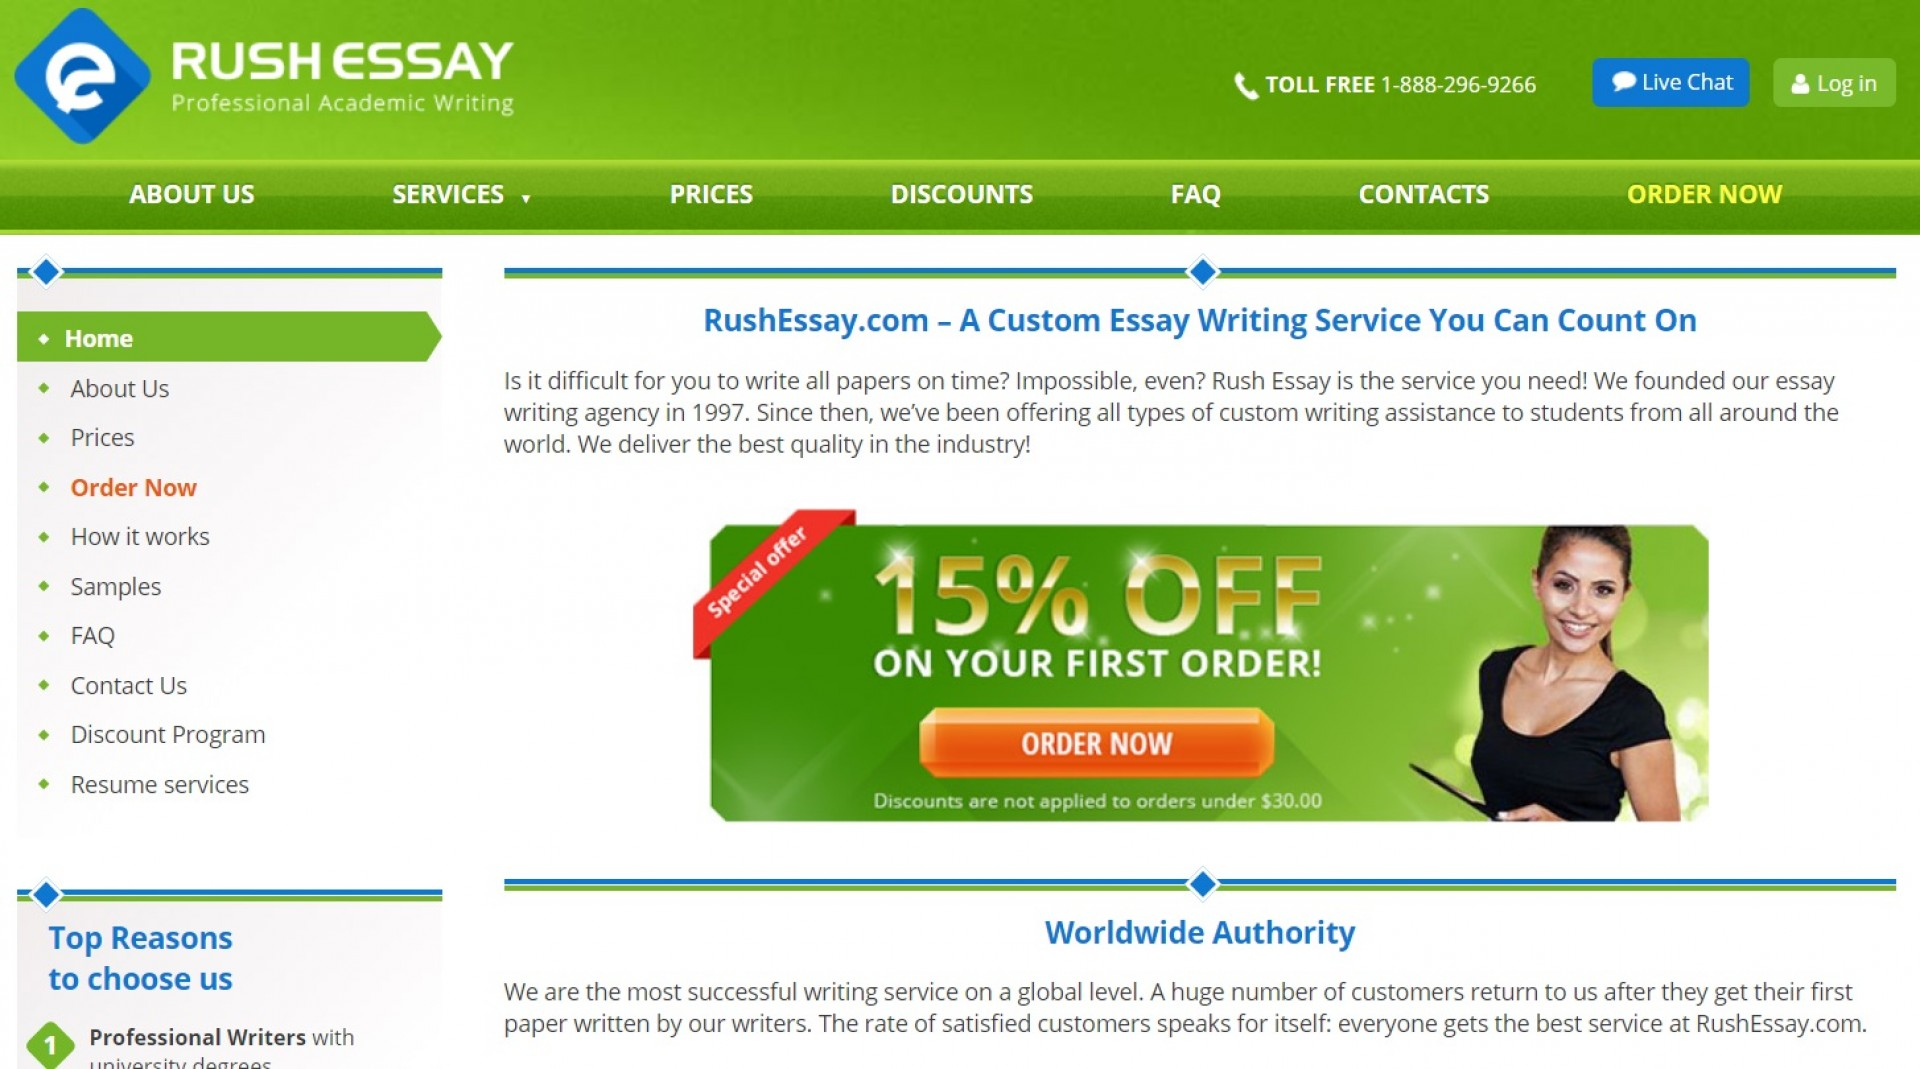 004 Rush Essay Review Example Error Best My Reviews 1920